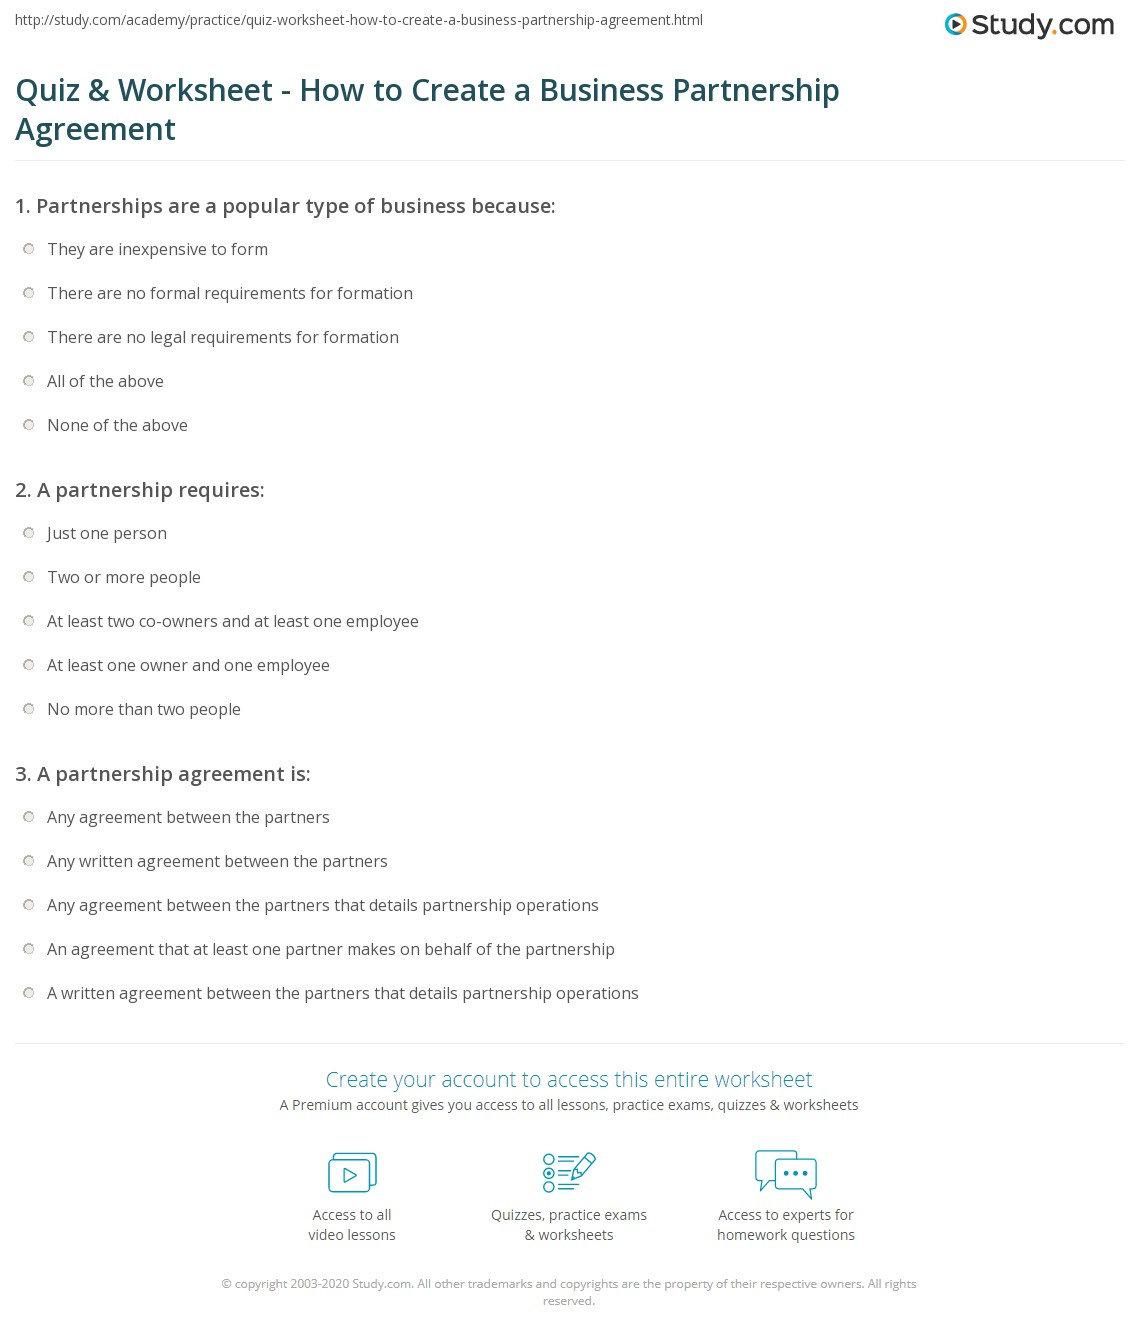 print creating a business partnership agreement worksheet